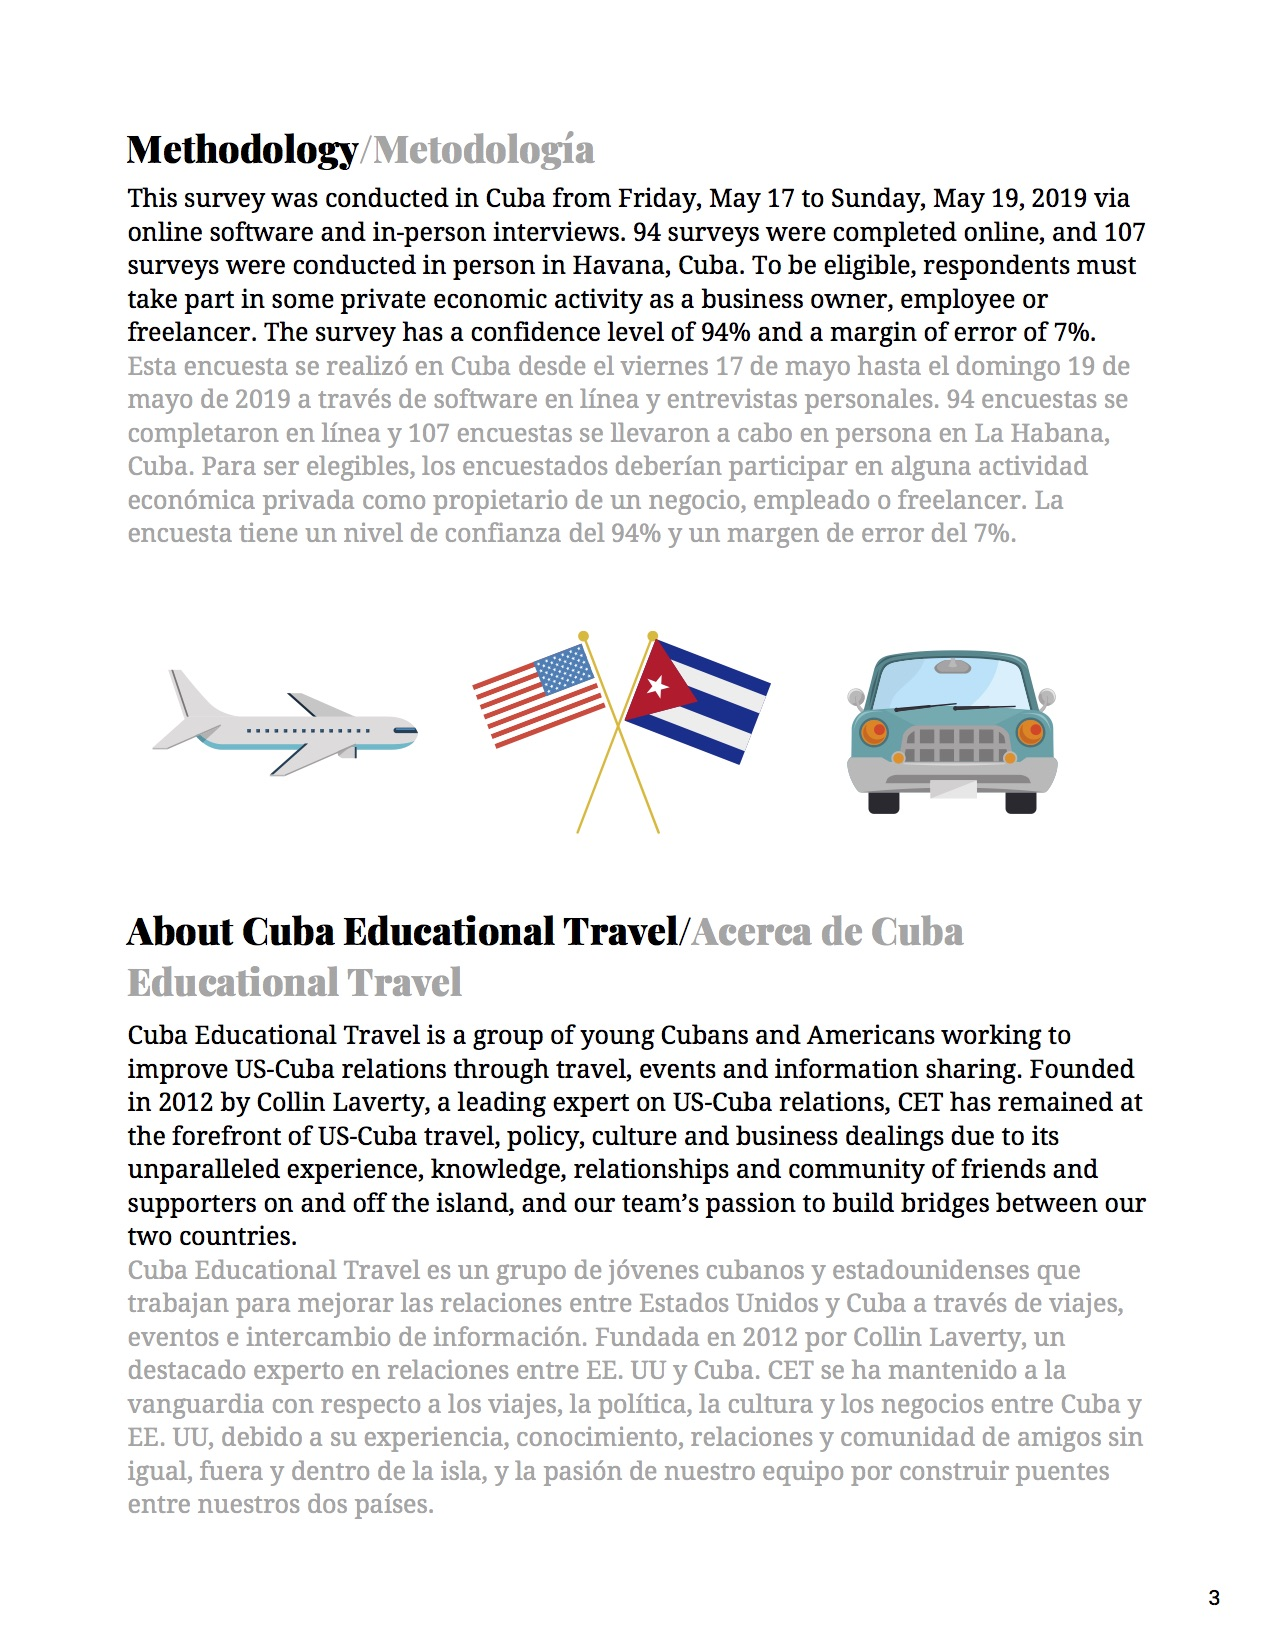 4May 2019 Survey Finds Cuban Private Sector Relies Heavily on American Visitors and Cubans Are _Very Worried_ About Impending Restrictions on Travel (1).jpg